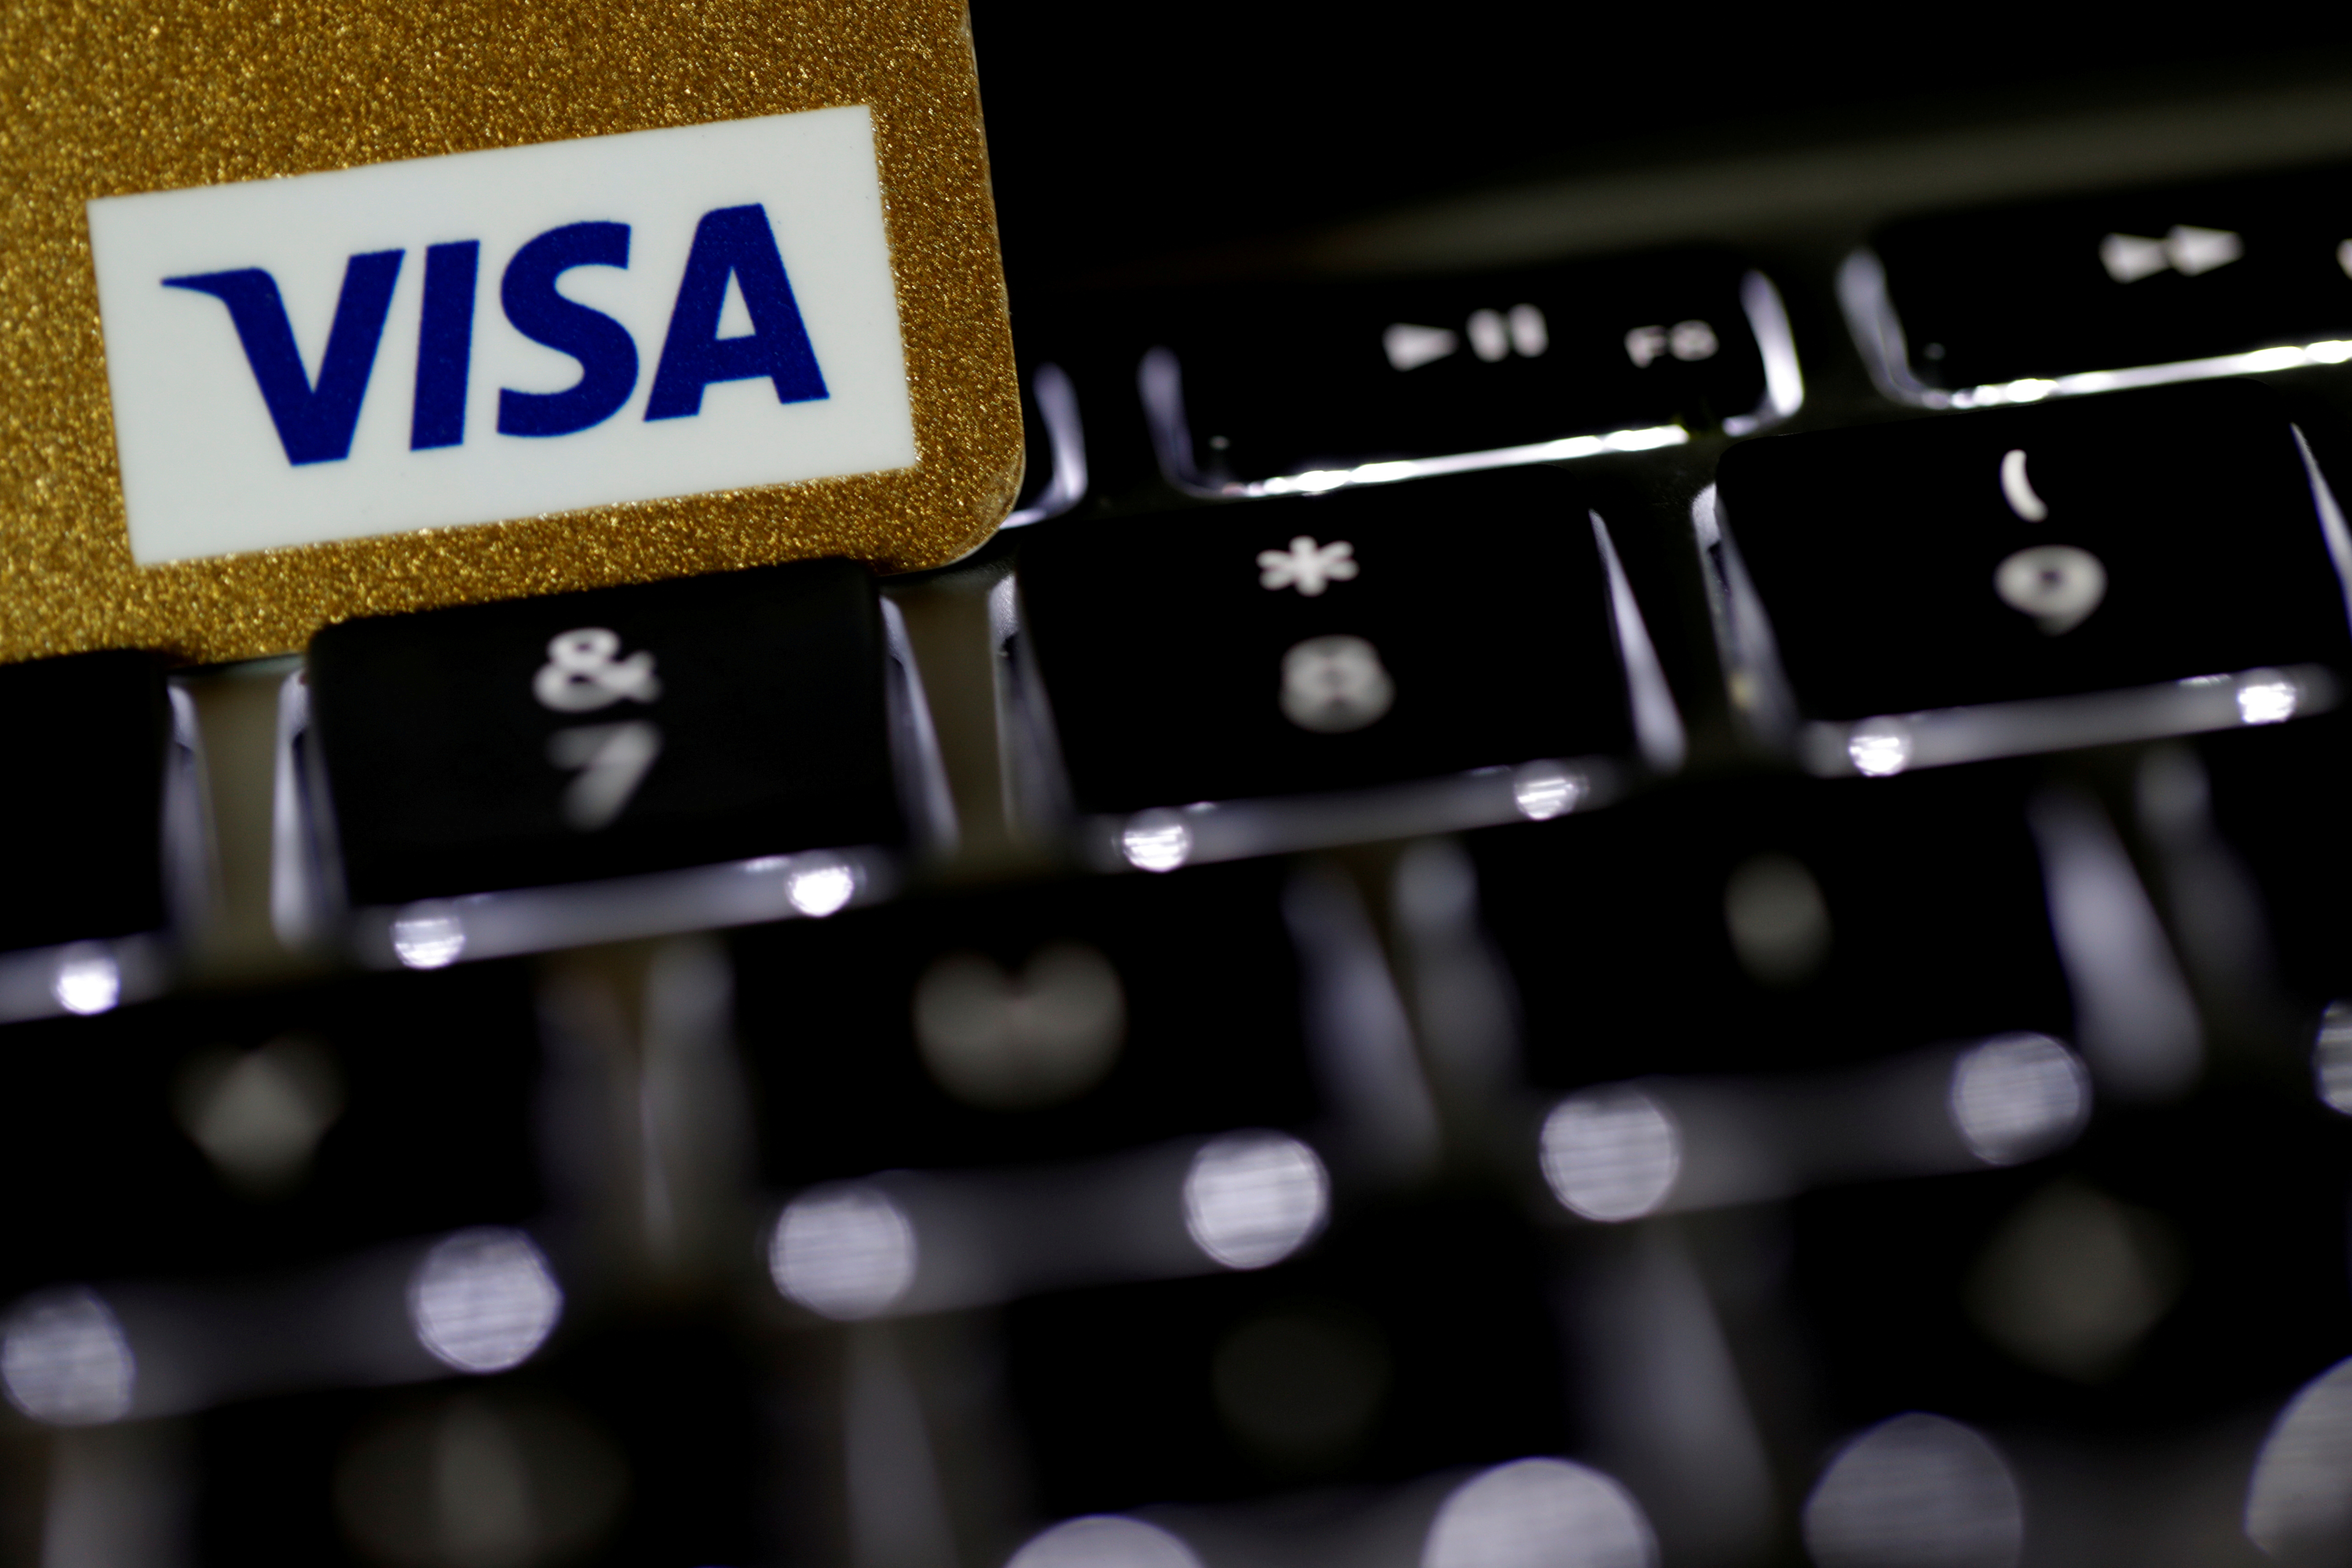 Visa adds to crypto acceptance - but buyer beware